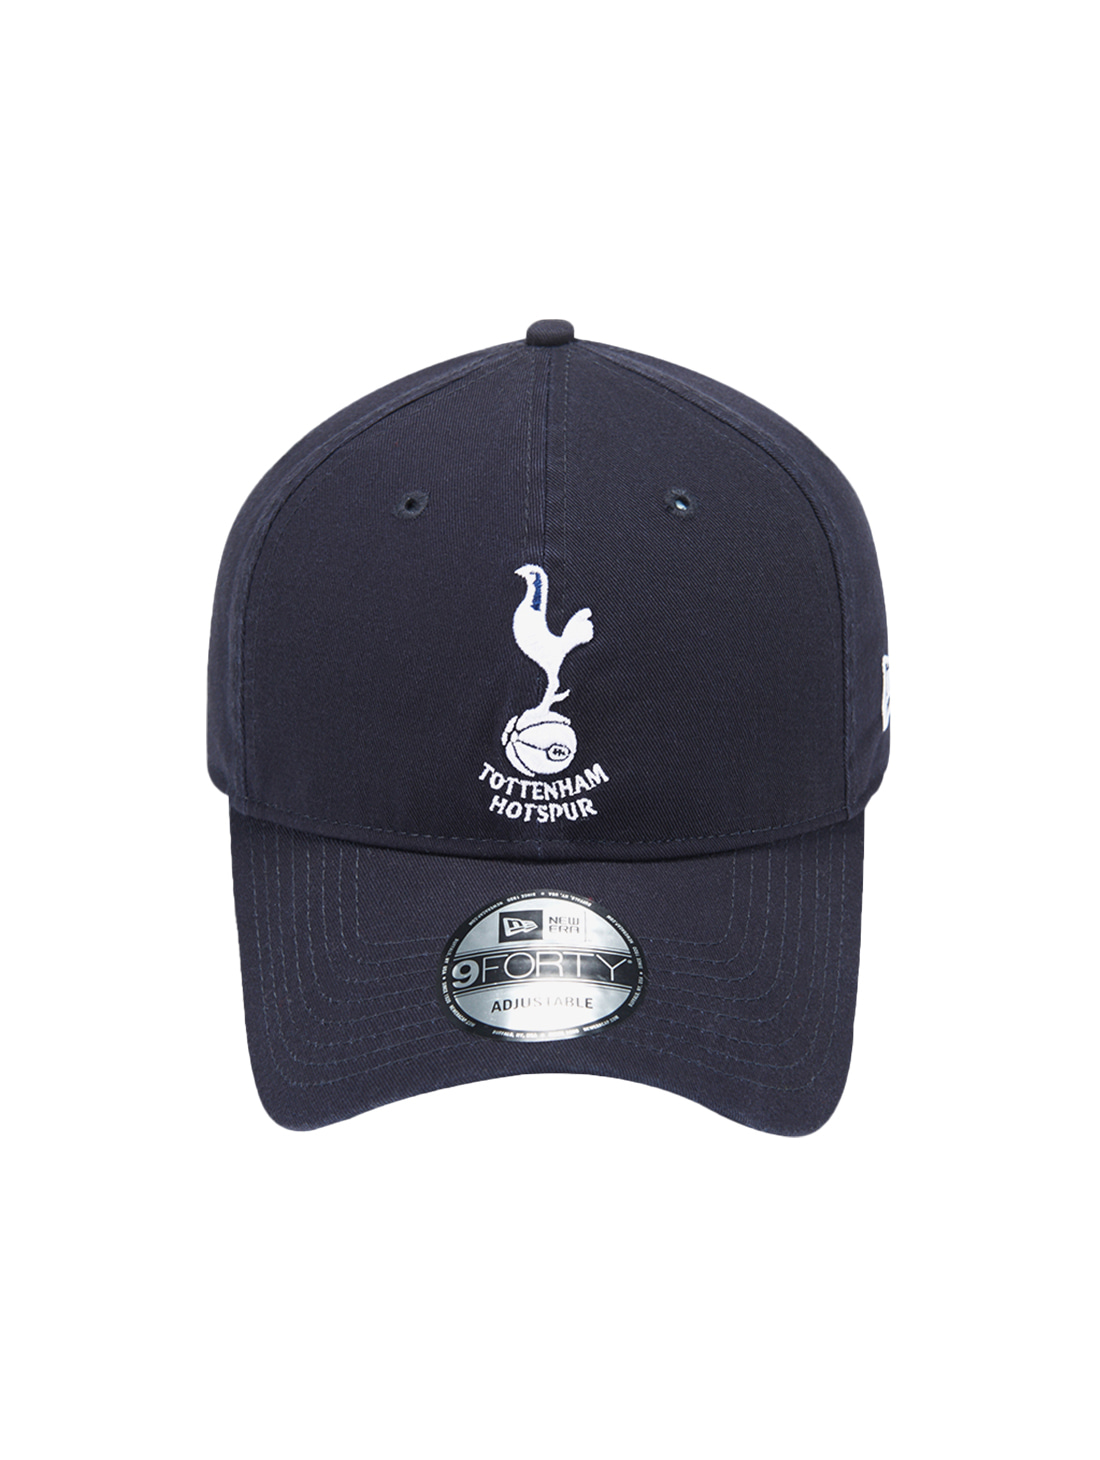 GOALSTUDIO TOTTENHAM 940UNST BALL CAP - NAVY